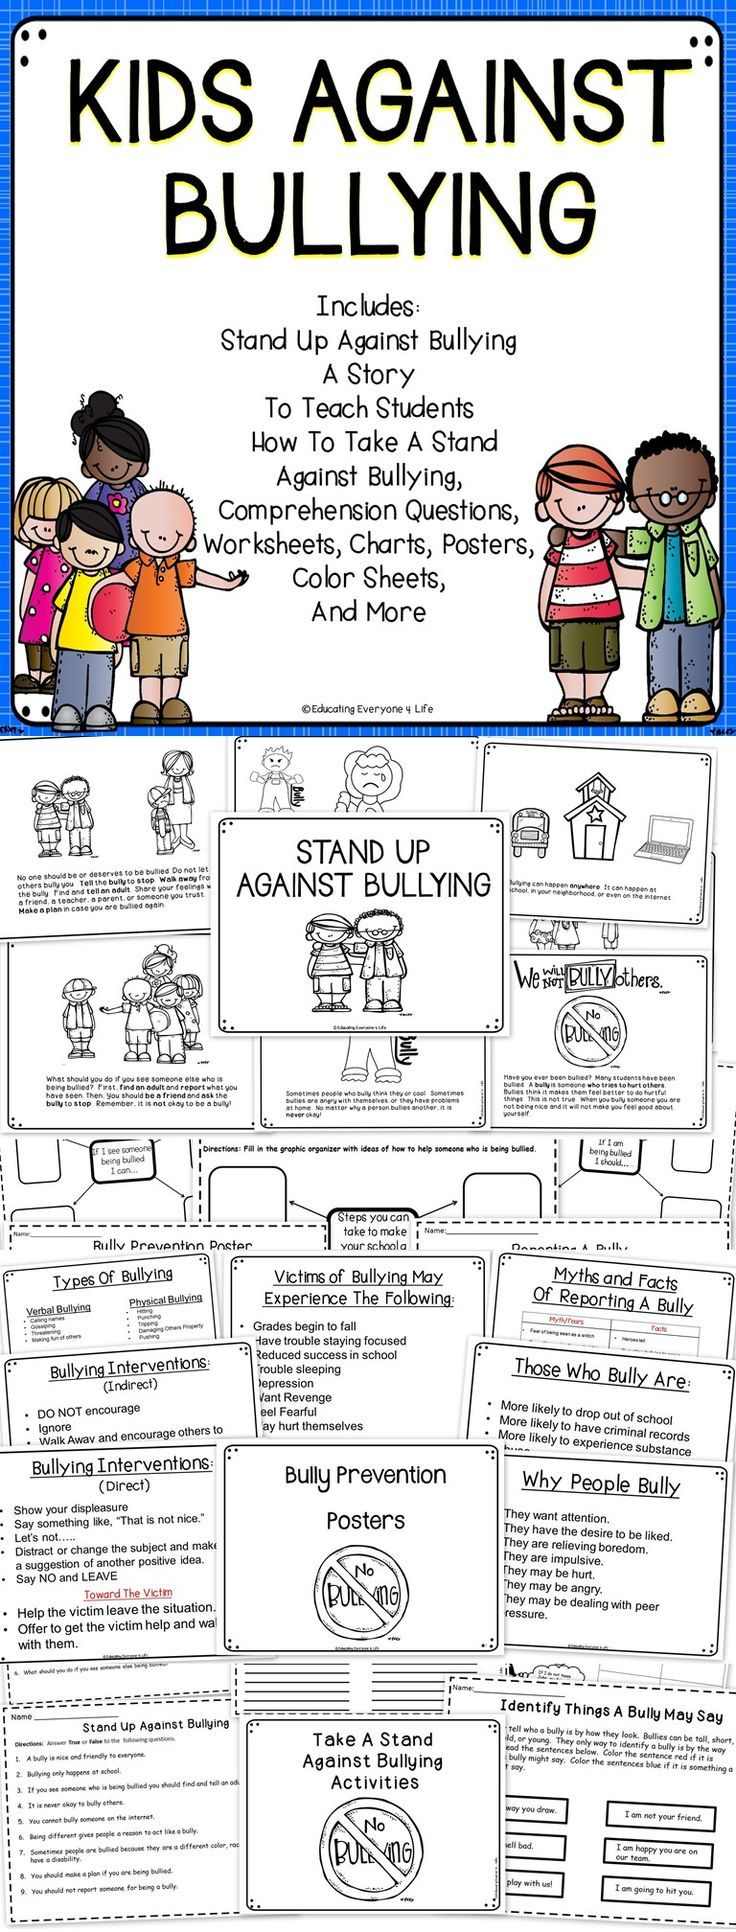 worksheet Bullying Worksheets 1000 ideas about bullying worksheets on pinterest kids against this bully prevention activity pack includes everything you need to teach students